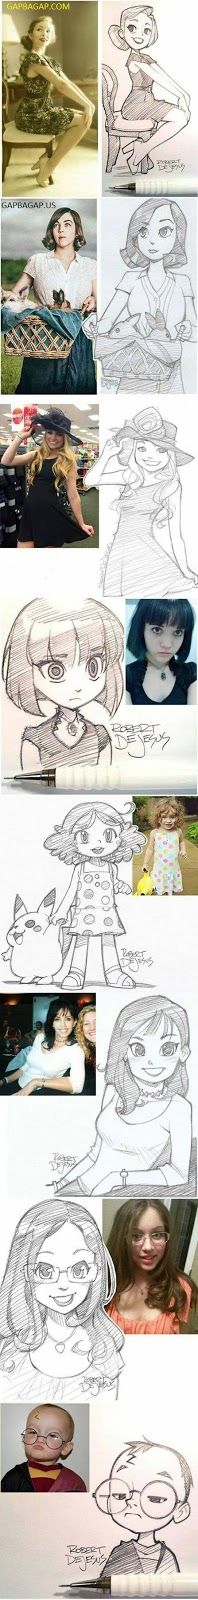 Top 20 Best Drawing Collection From Around The World